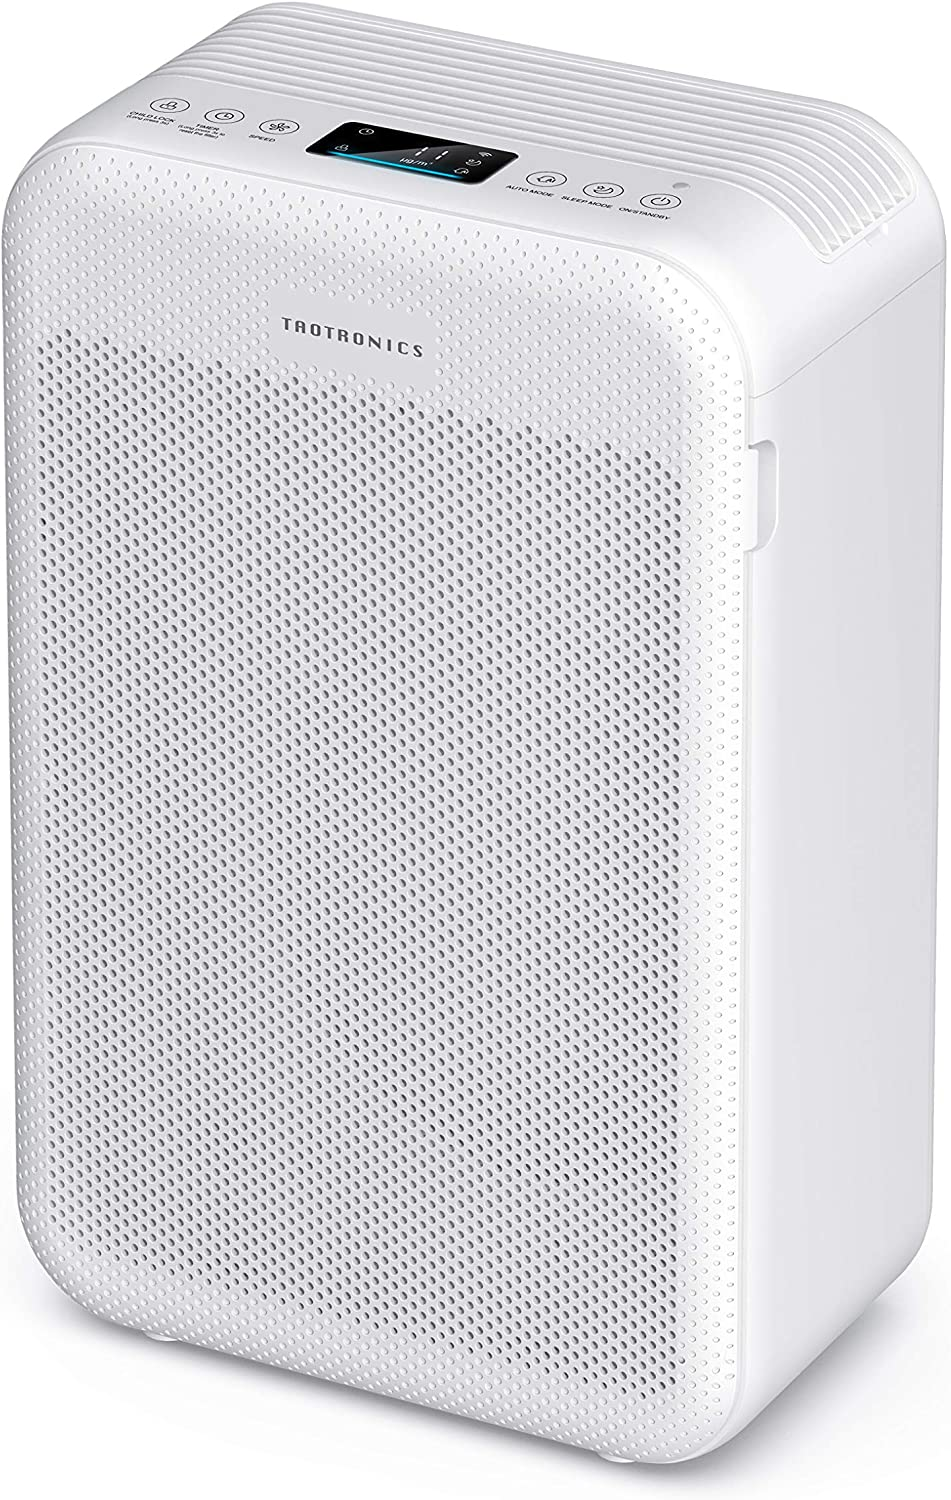 TaoTronics Air Purifier for Home for £135.99